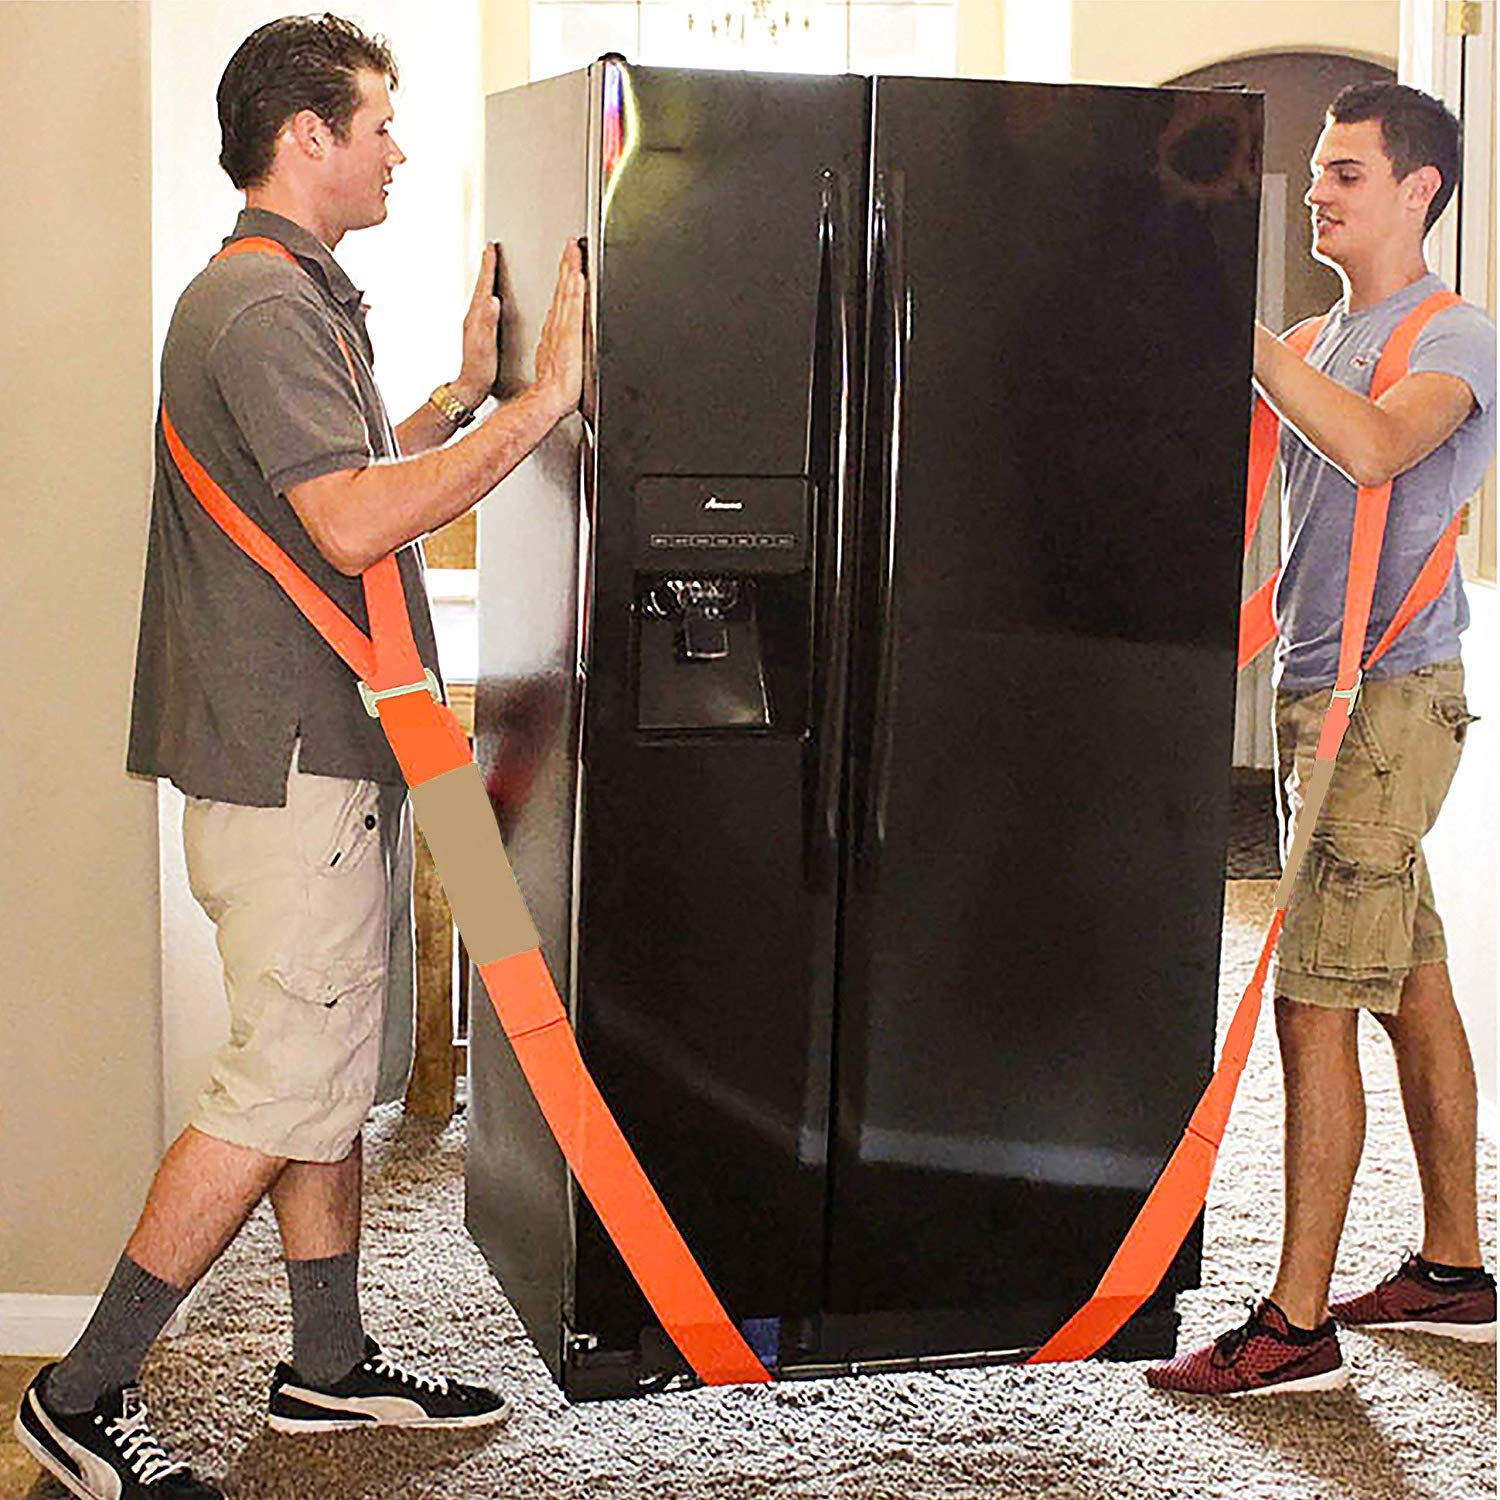 Appliances ACCOCO Moving and Lifting Straps with Handy Storage Bag,2 Person Shoulder Dolly Moving Straps Carrying Belt Max Load 650 Pound Easy Carry Furniture Mattresses or Any Heavy Object